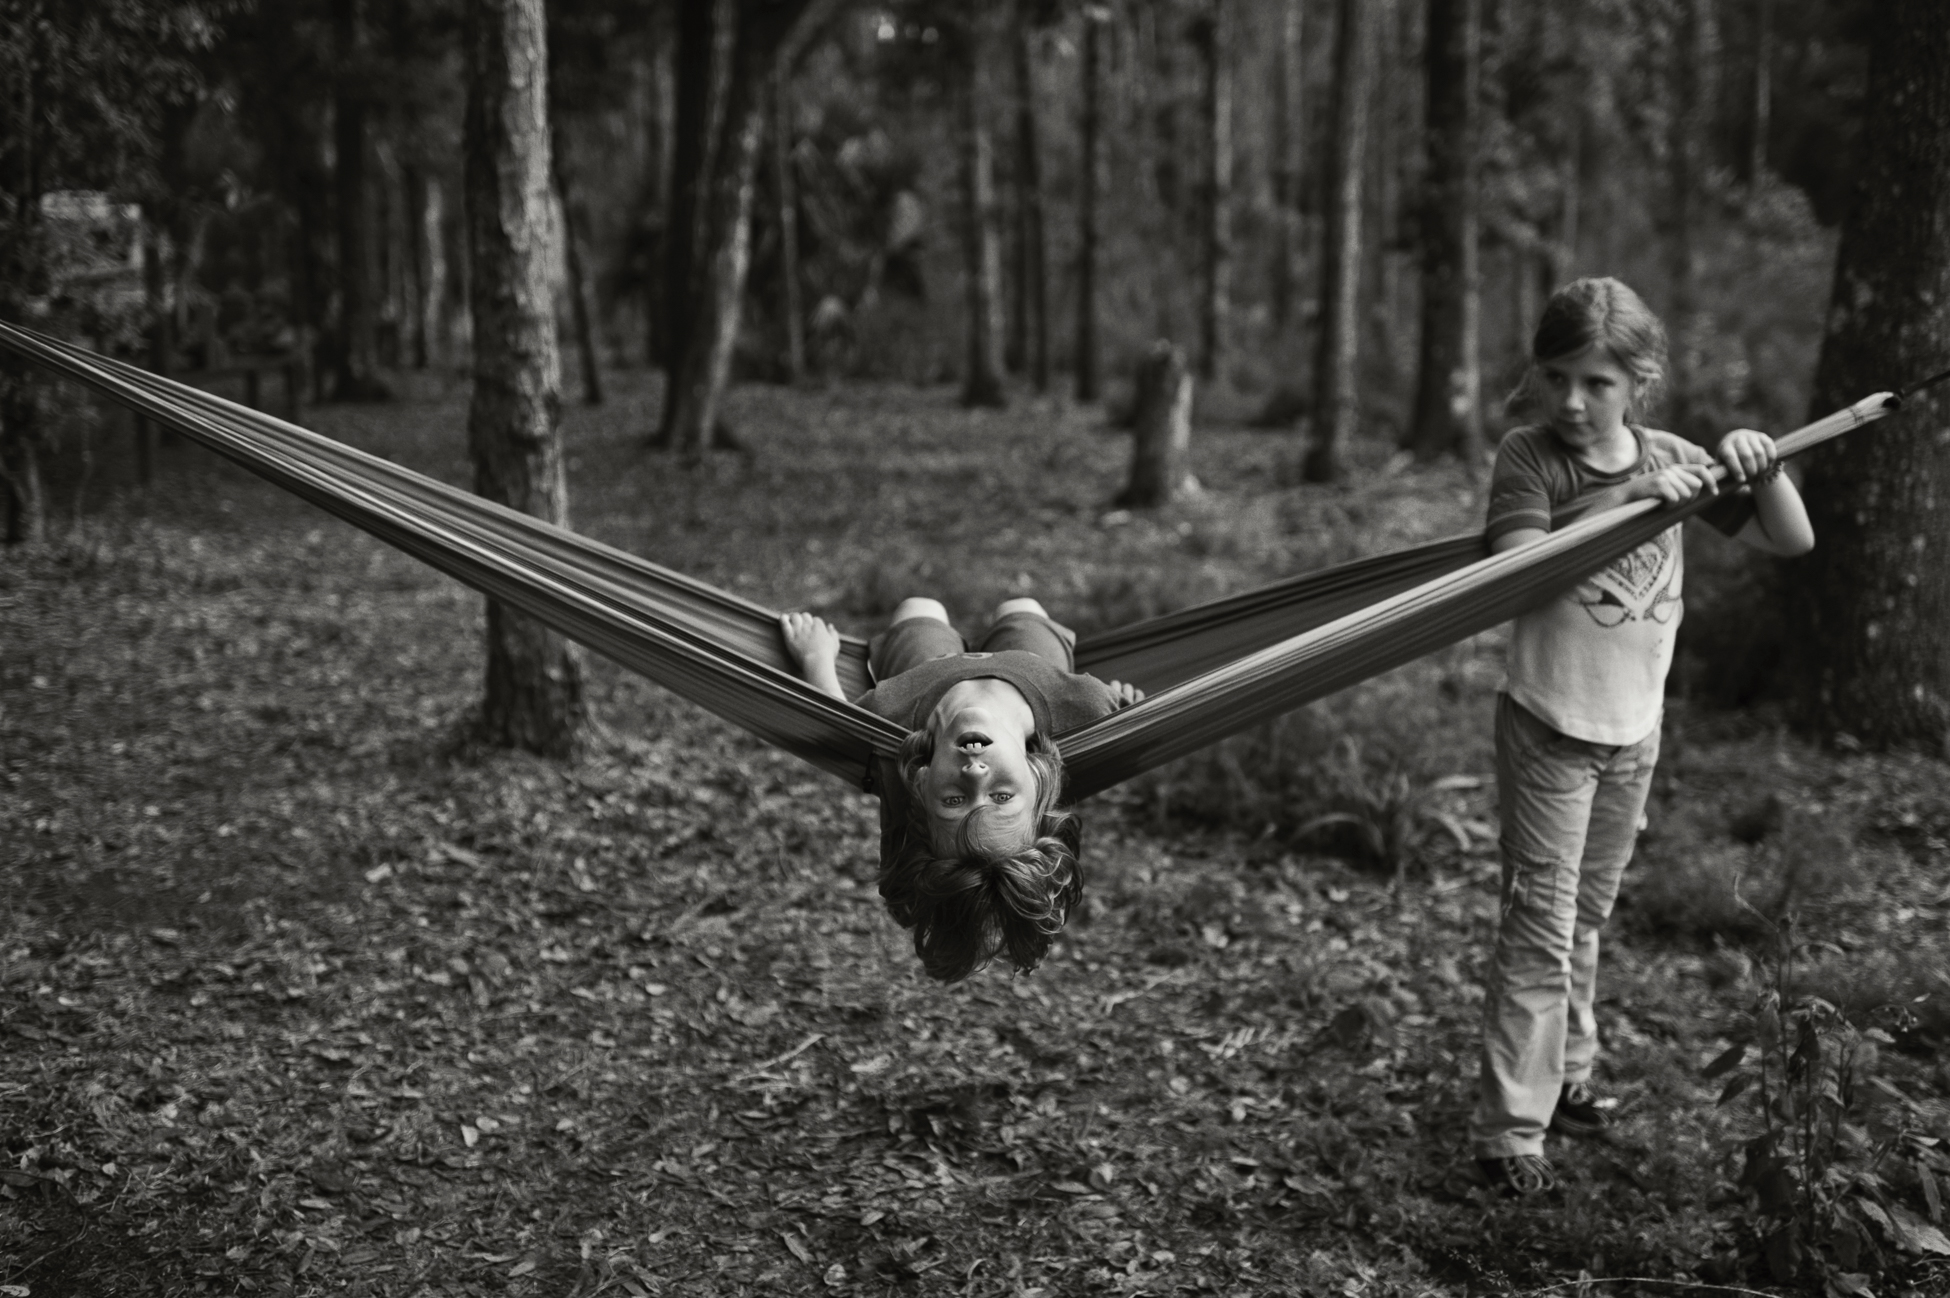 Sky and Ryder on Hammock, Florida, 2012